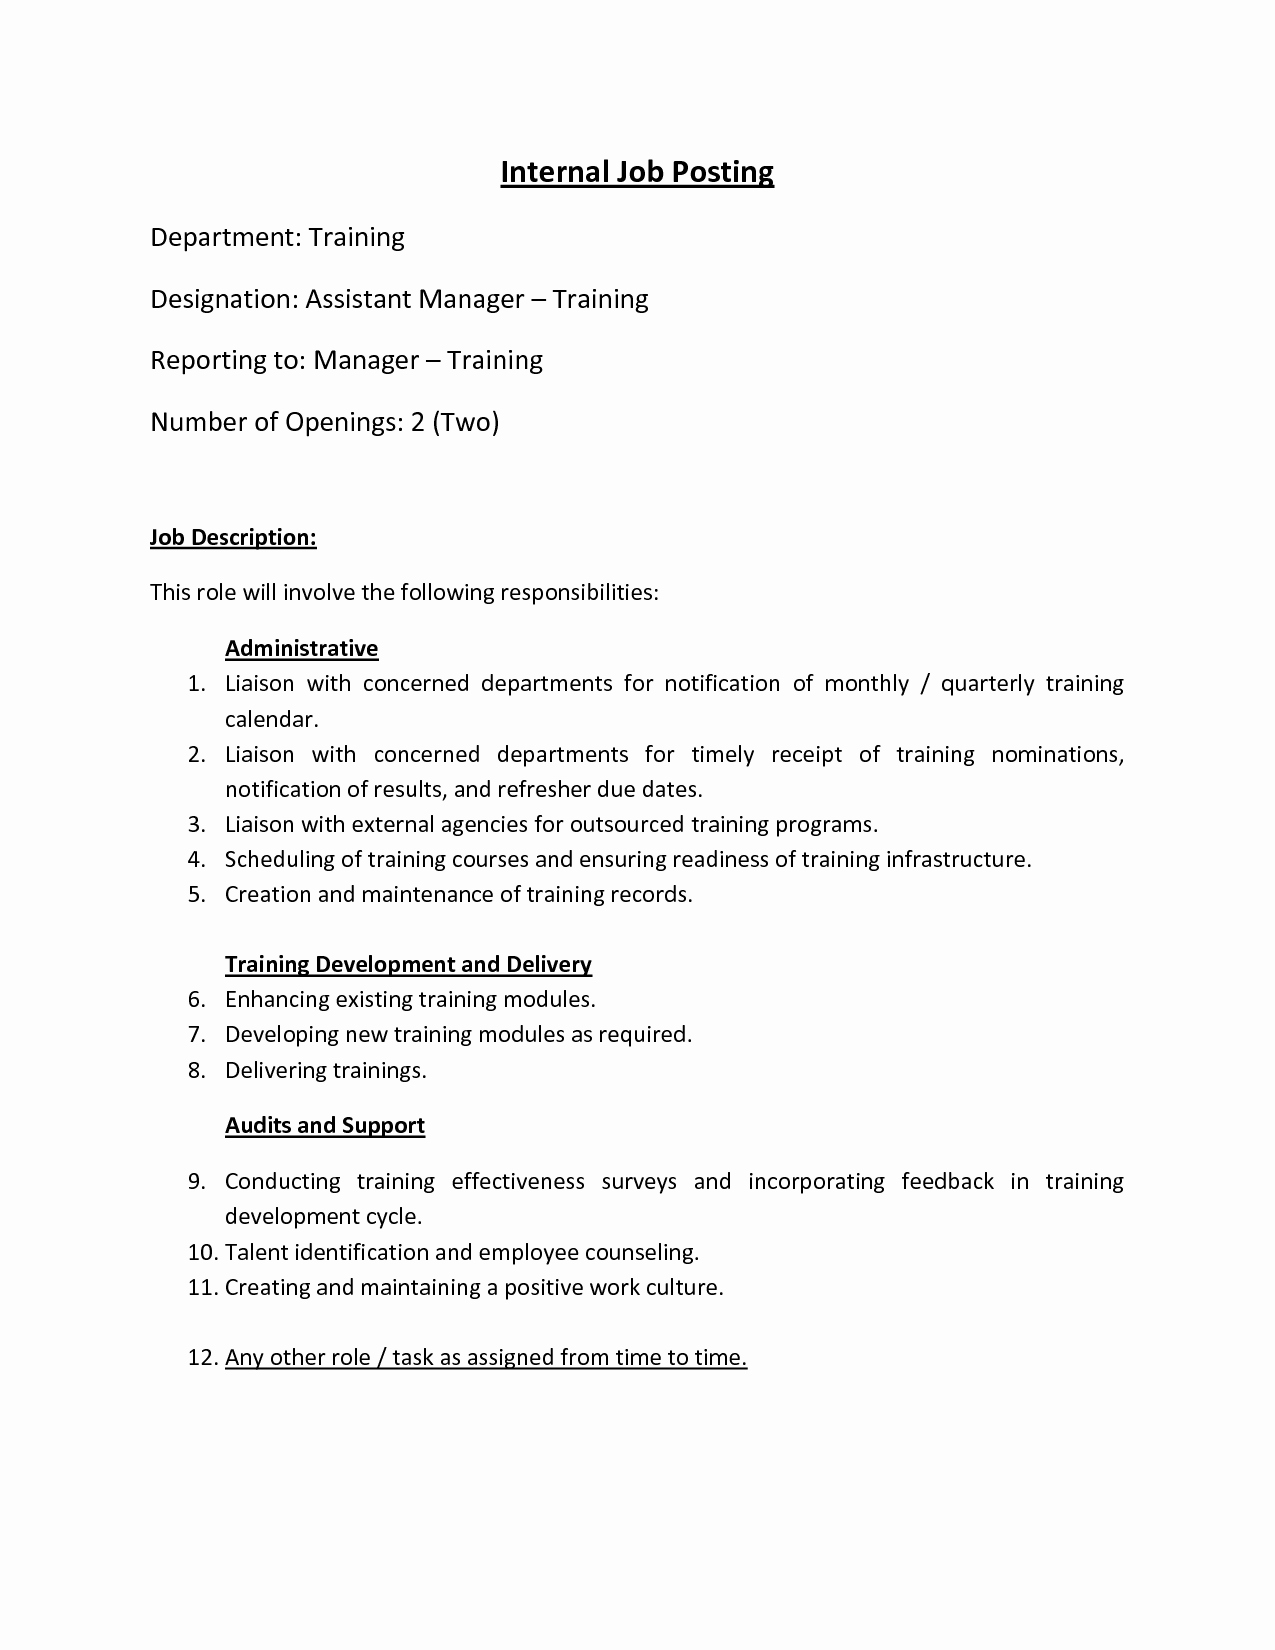 Internal Job Posting Template Unique Best S Of Sample Internal Job Posting Template